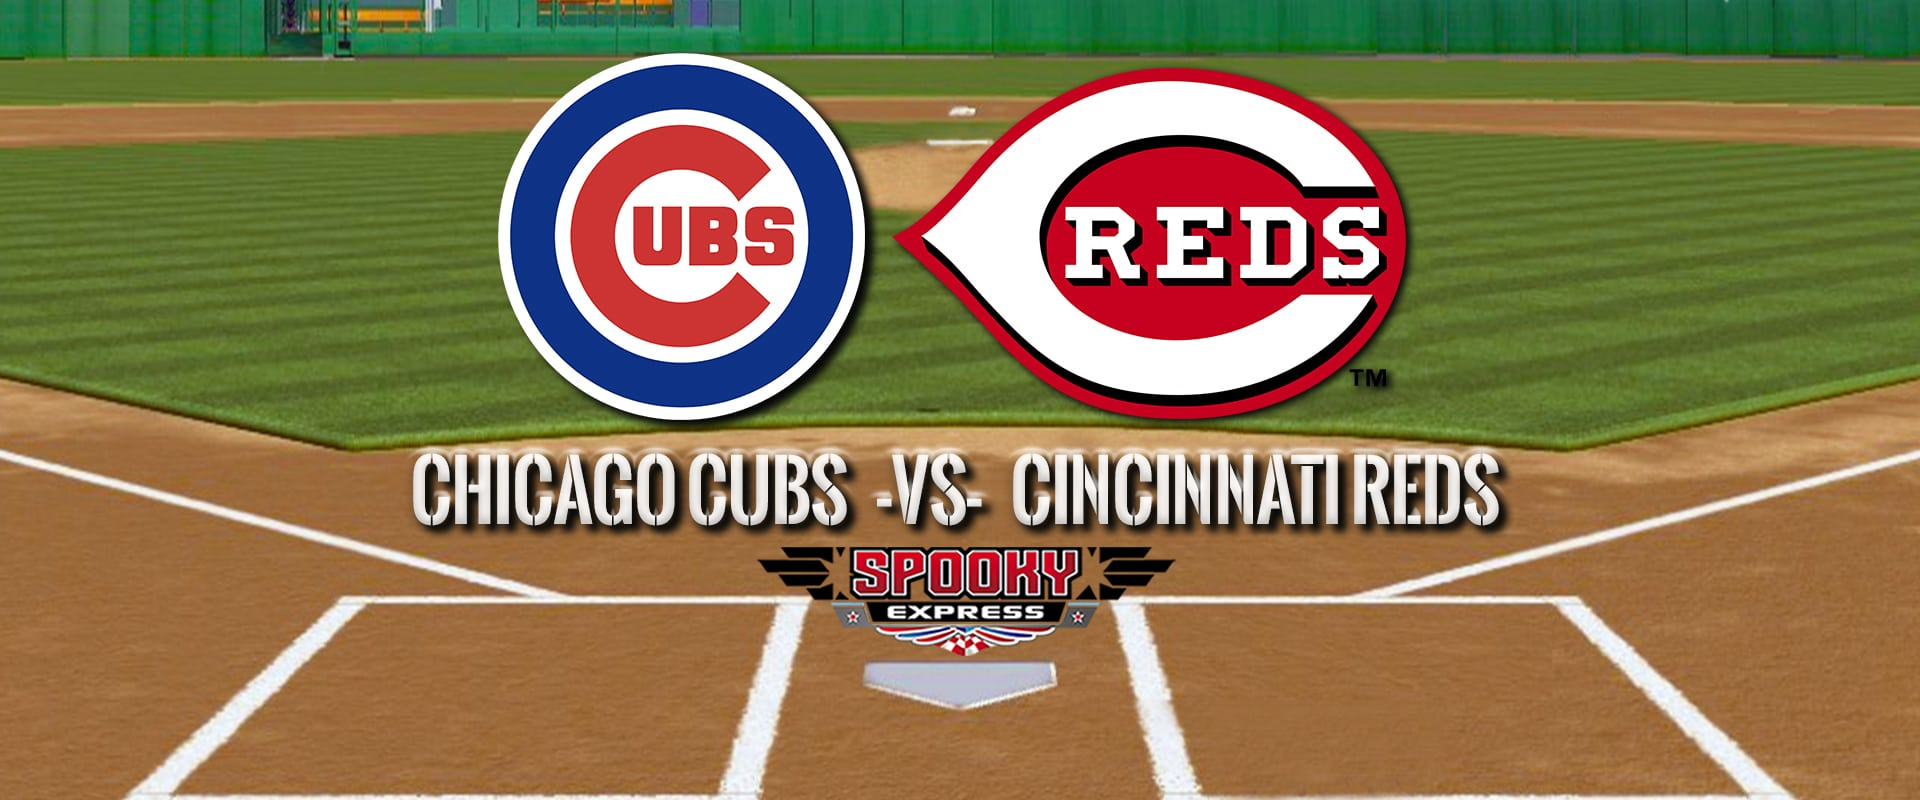 MLB Betting Preview Cincinnati Reds vs Chicago Cubs